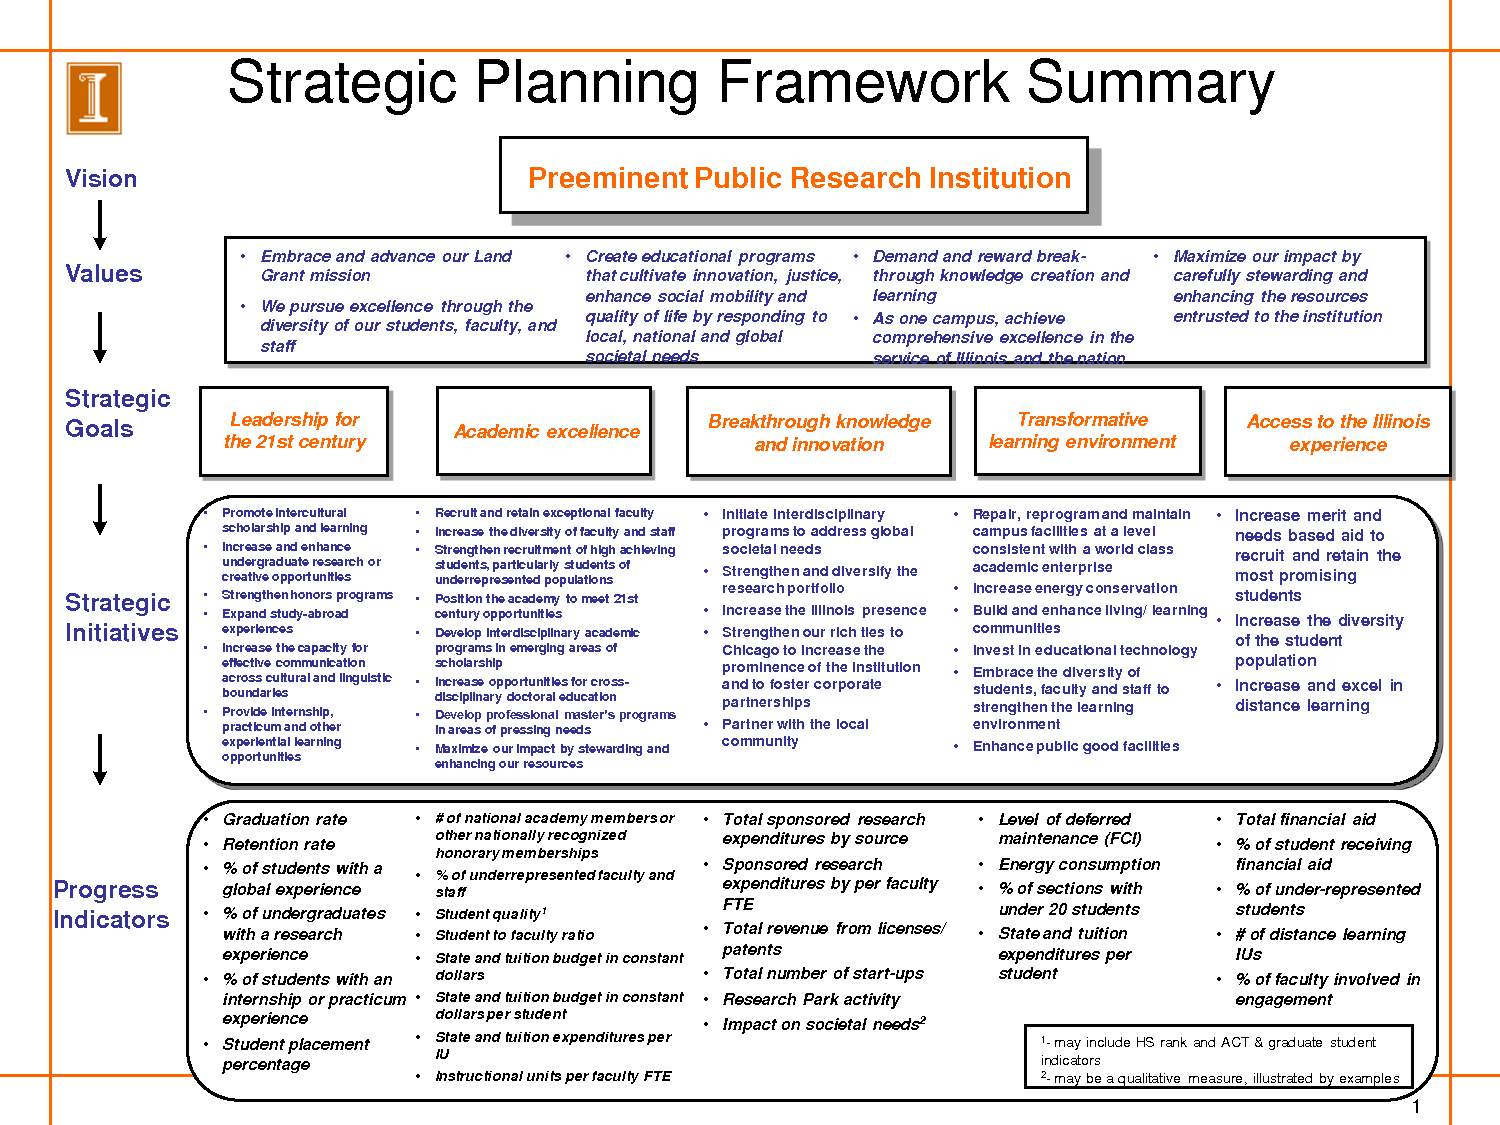 strategic planning process for nonprofits Google Search